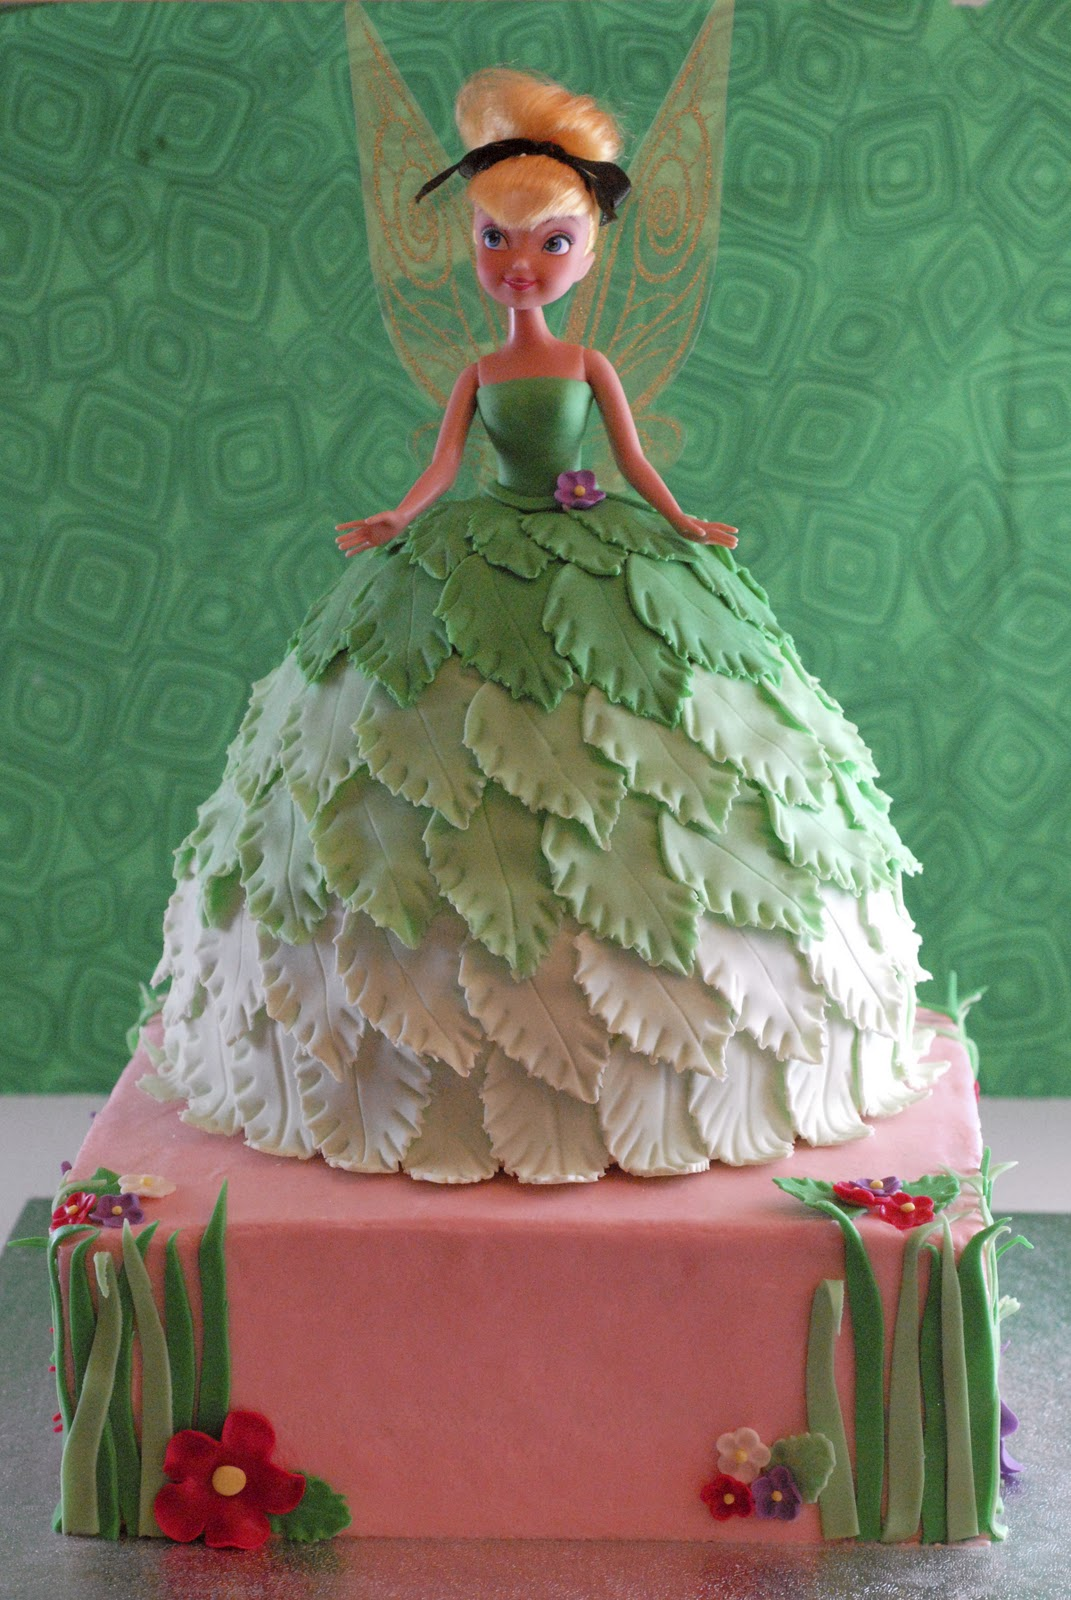 Tinkerbell doll cake recipe